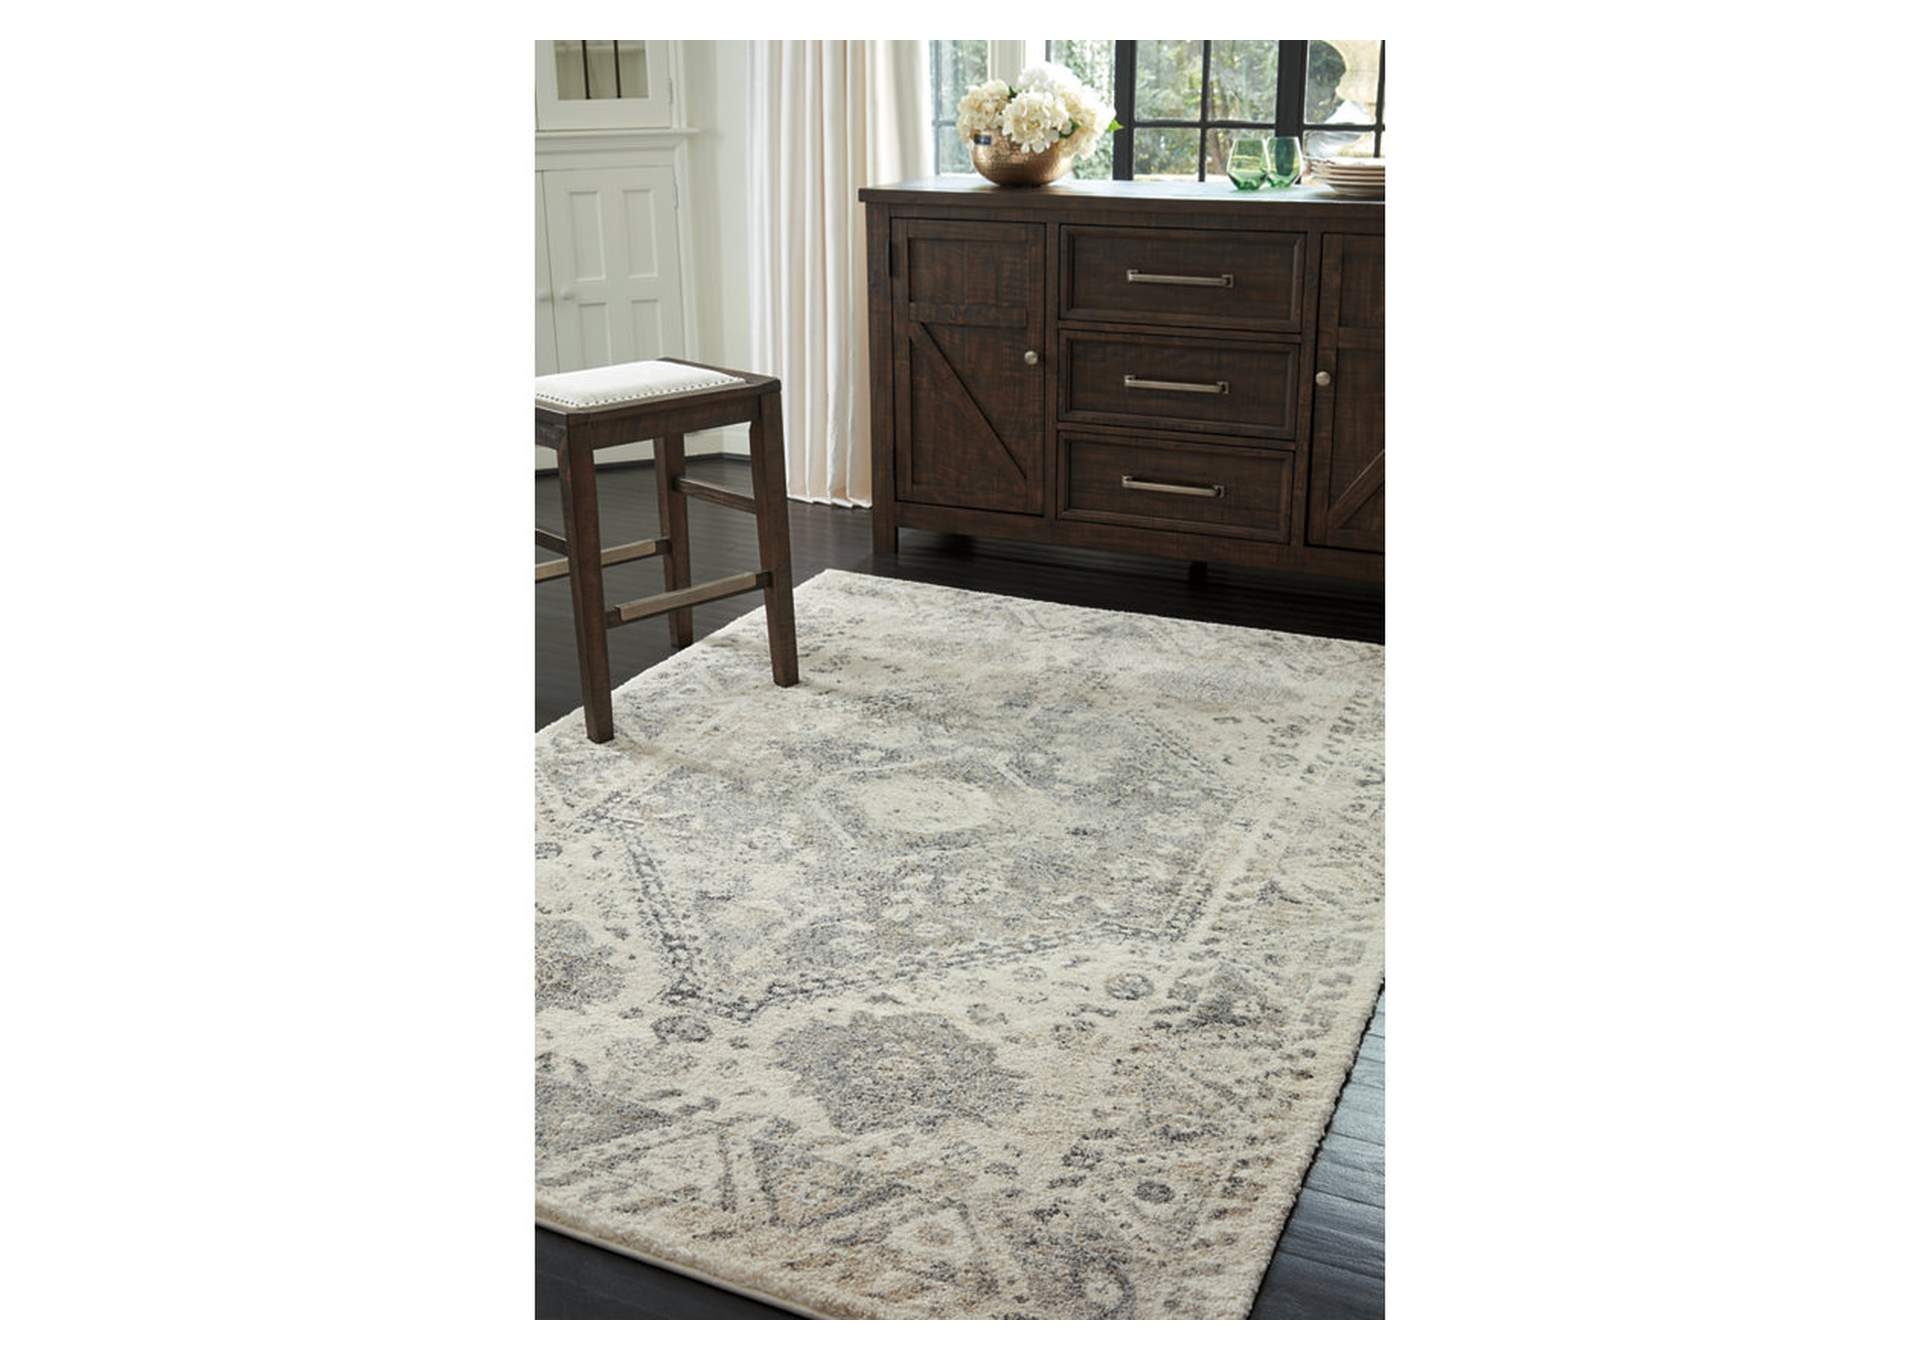 Precia Gray/Cream Medium Rug,Signature Design By Ashley